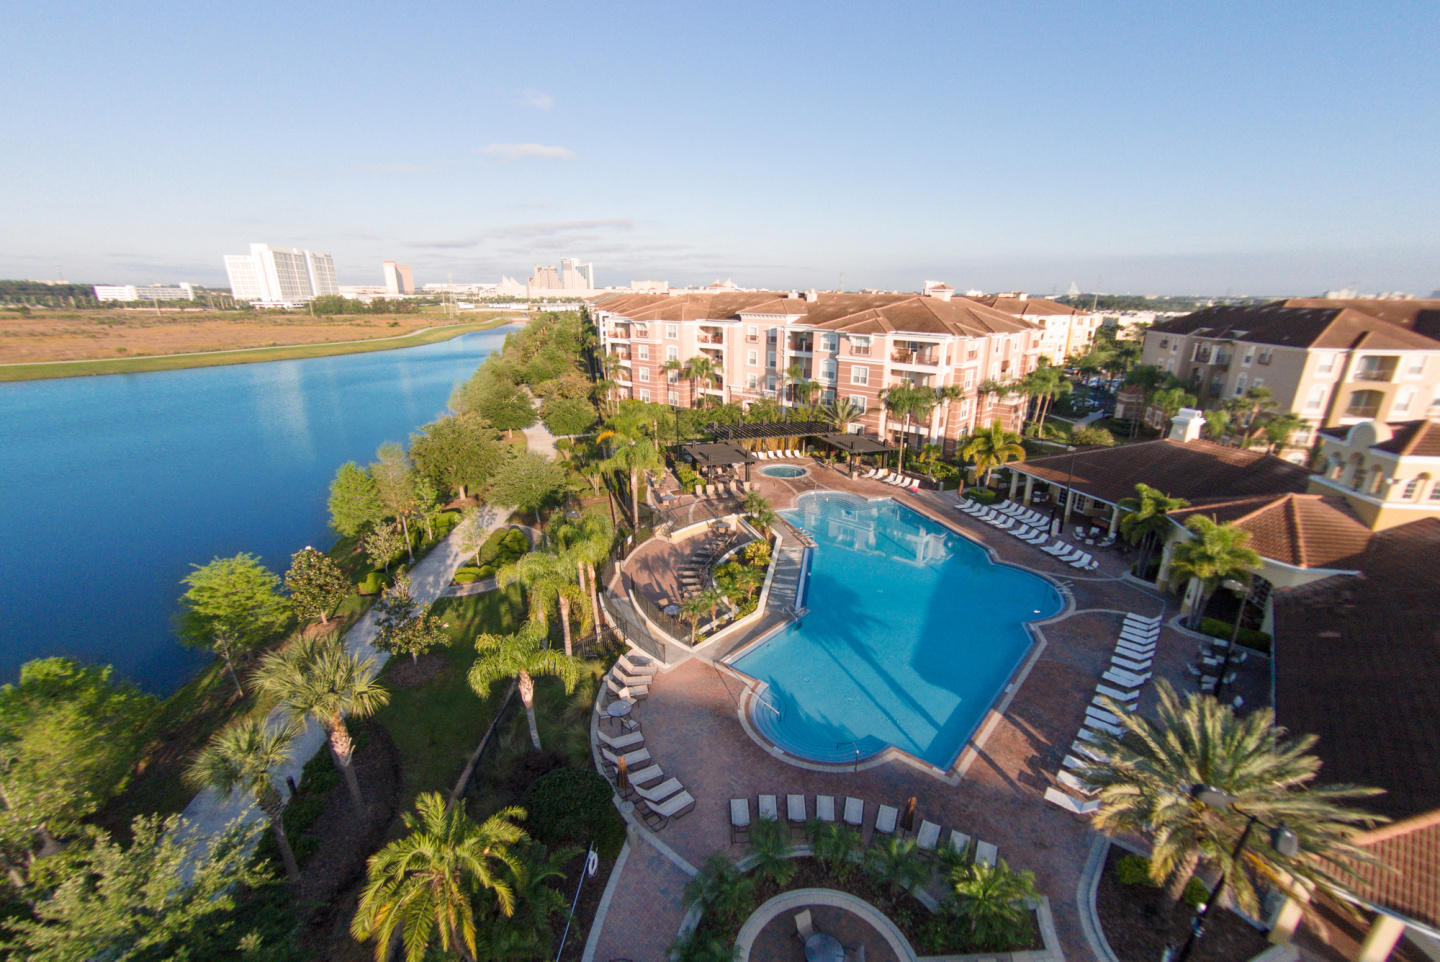 Vista Cay 3 Bed Vacation Townhome l 4002 Slide-1